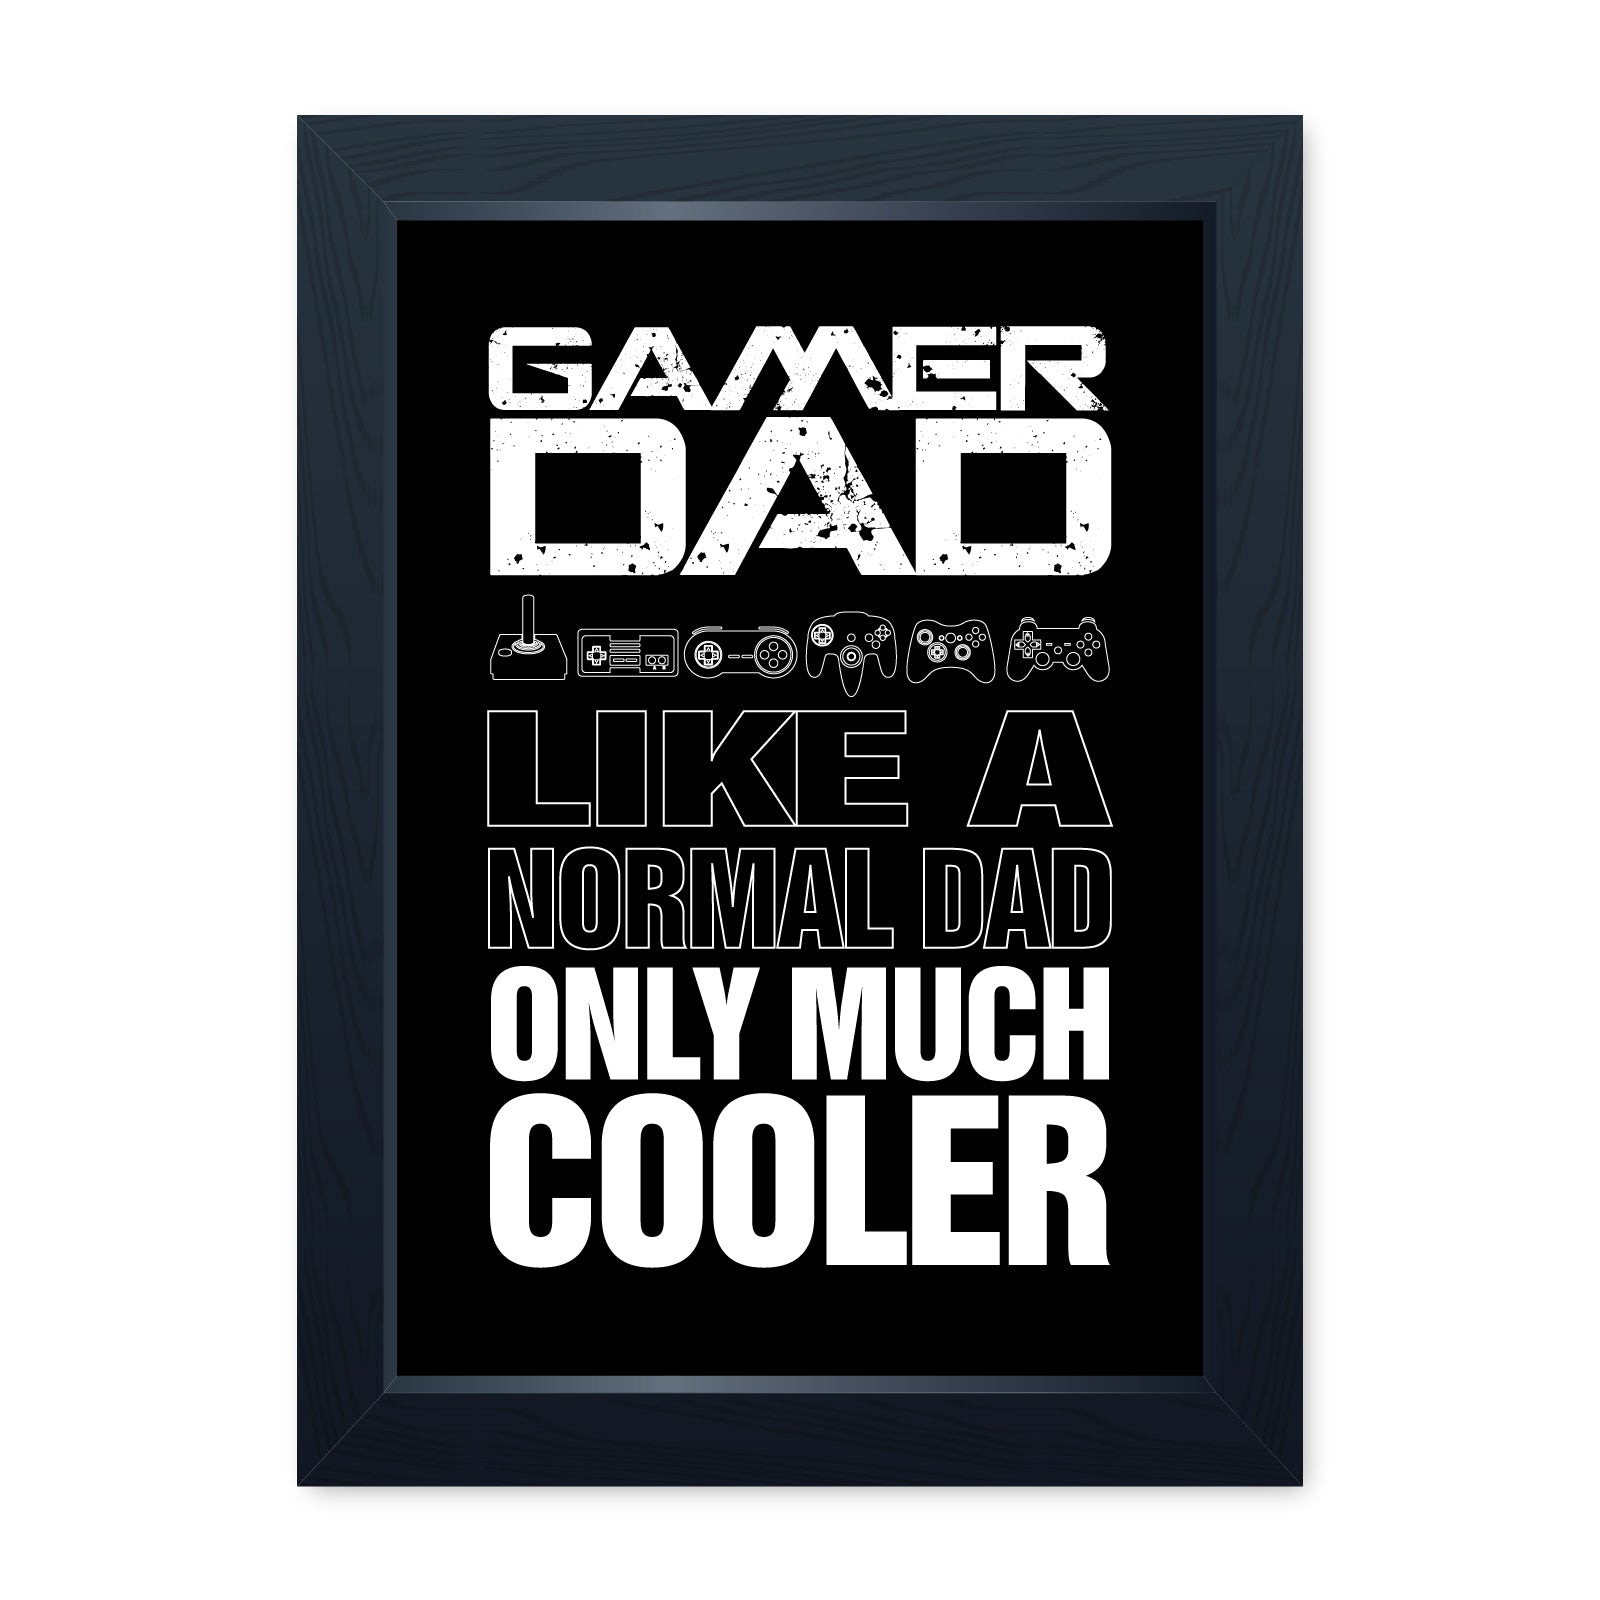 Gamer Dad, Video Game Framed Print - Home Decor Kitchen Bathroom Man Cave Wall Art